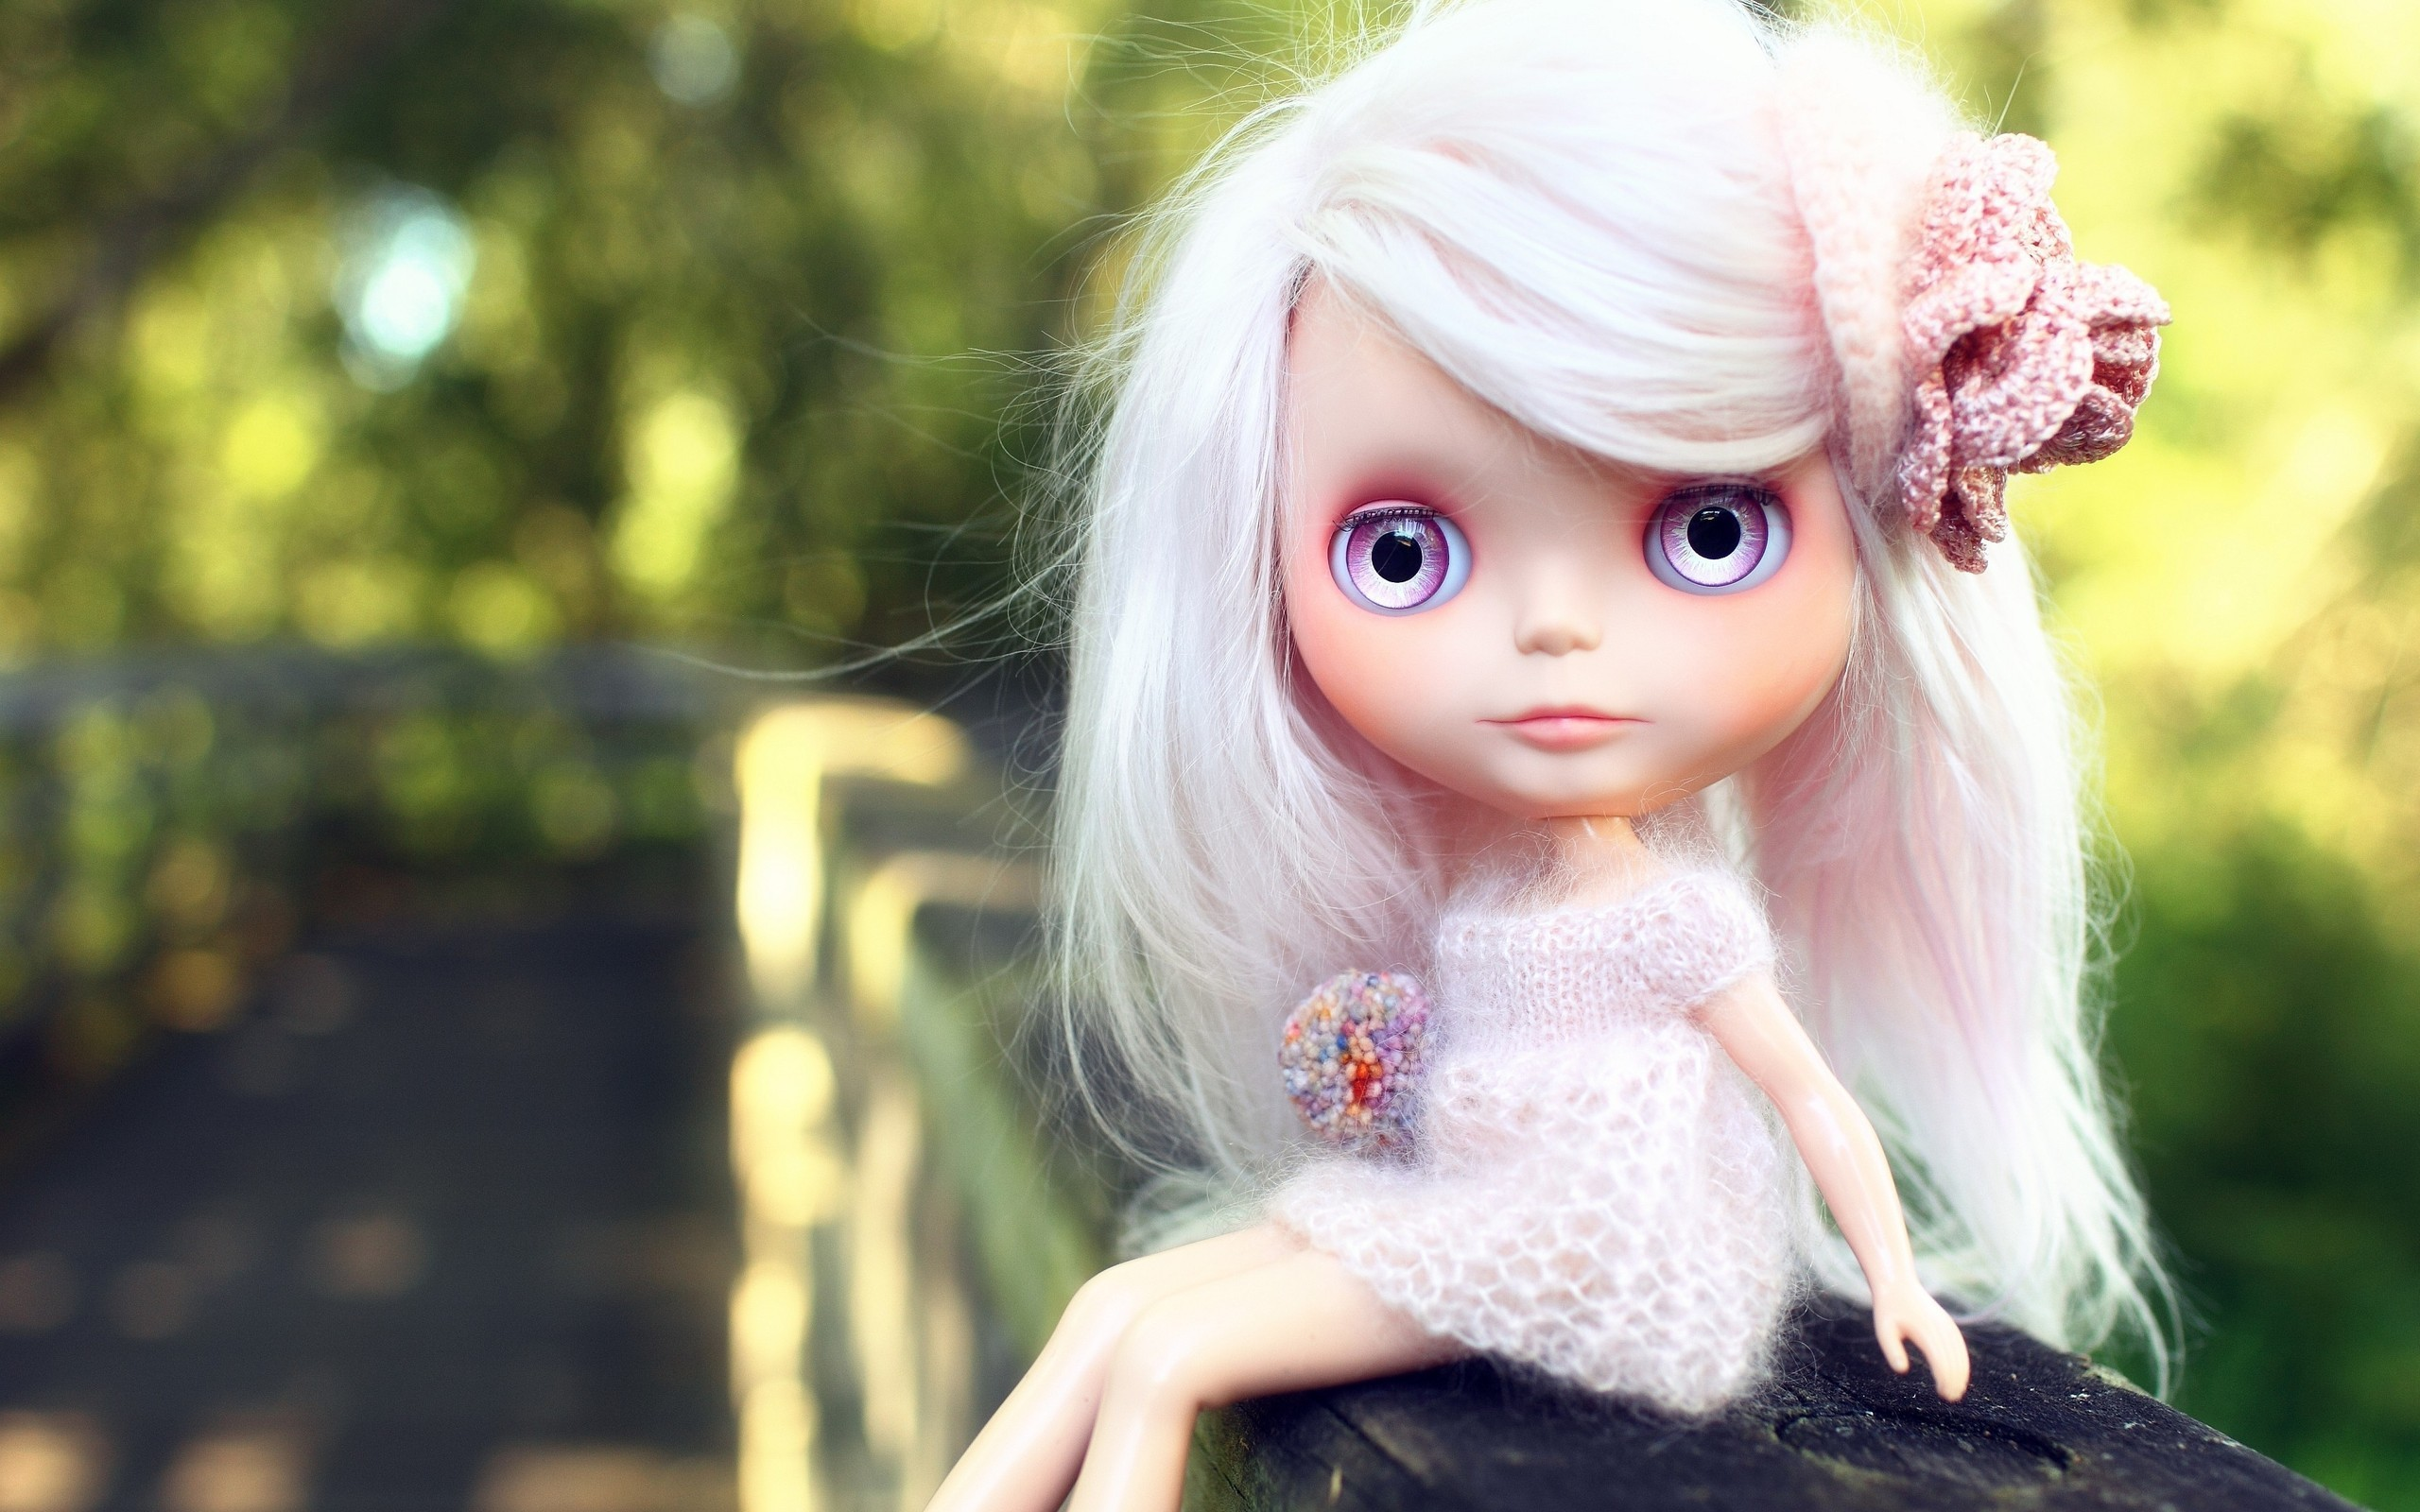 Widescreen Of Hd Doll Good Cute Baby Wallpaper Images Computer